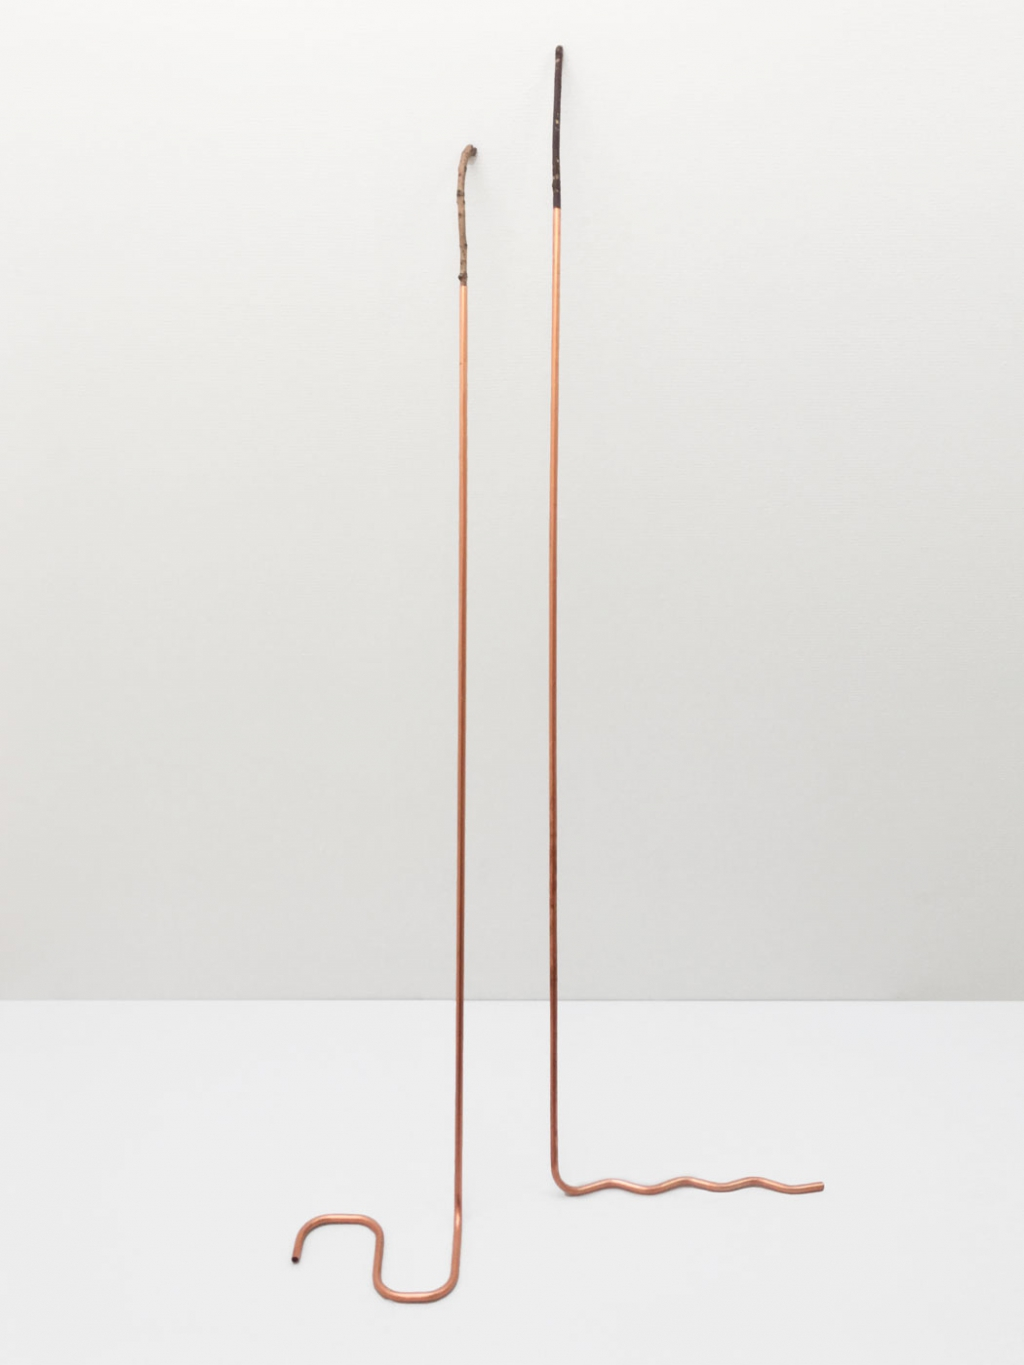 SARAH-JANE HOFFMANN To fit a Prosthesis 2015